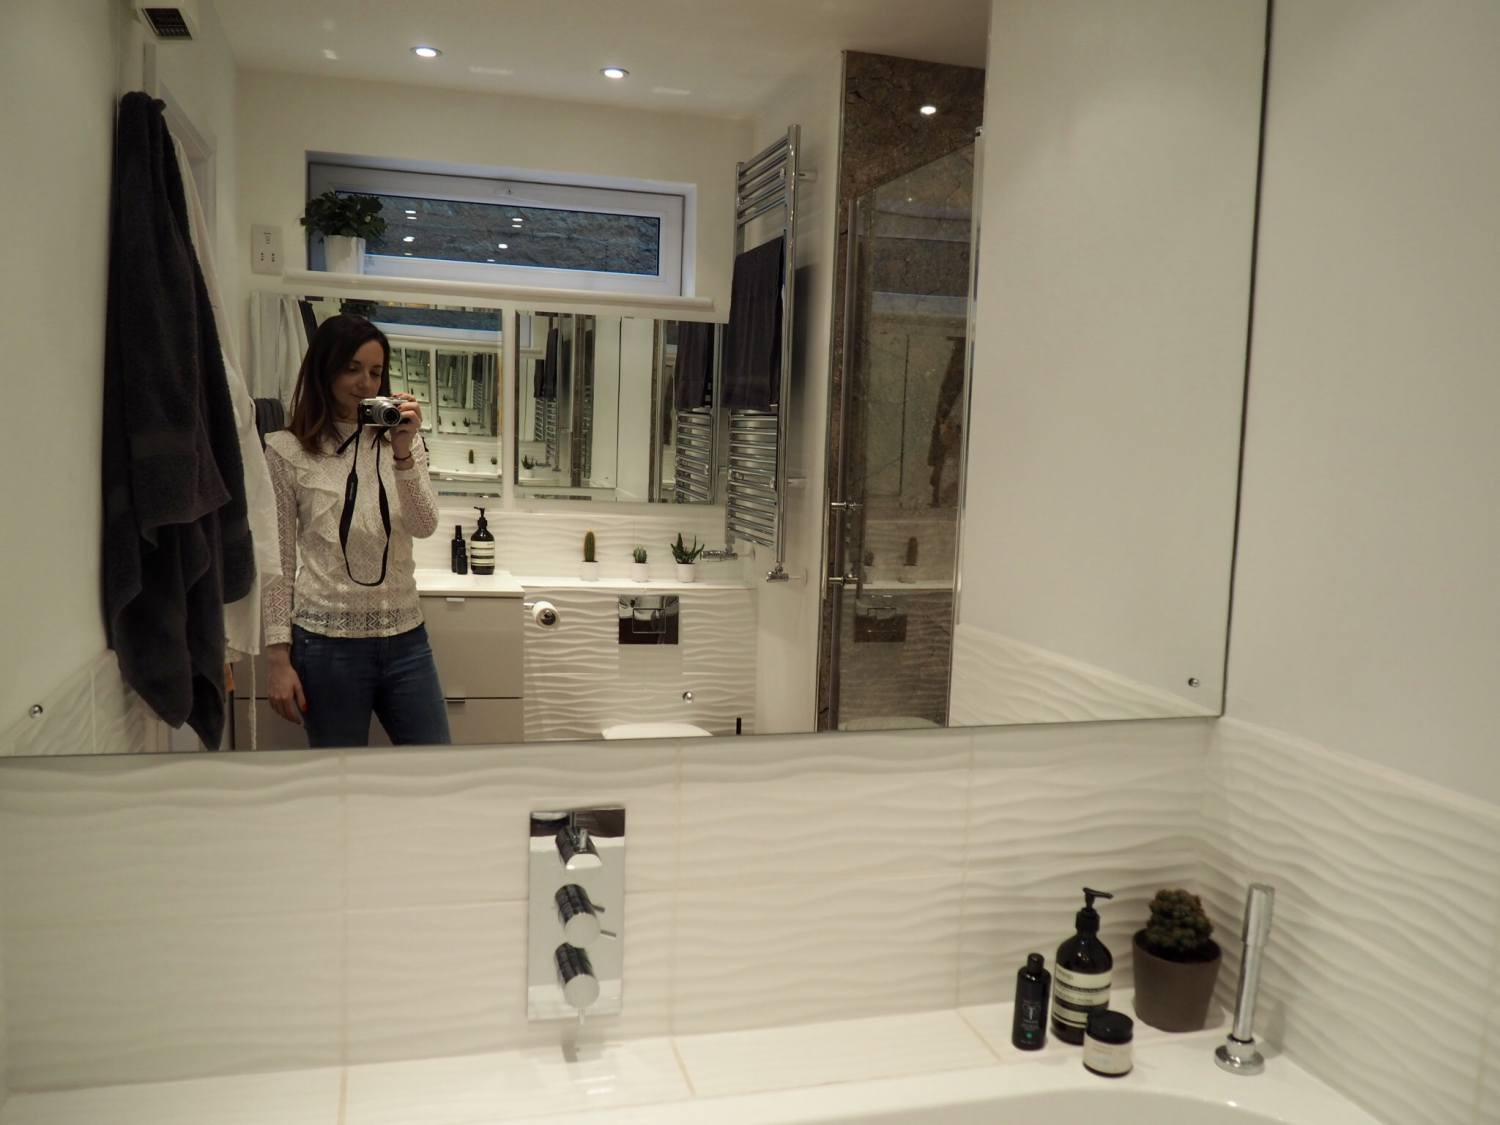 6 ways to a hotel bathroom at home | more than toast